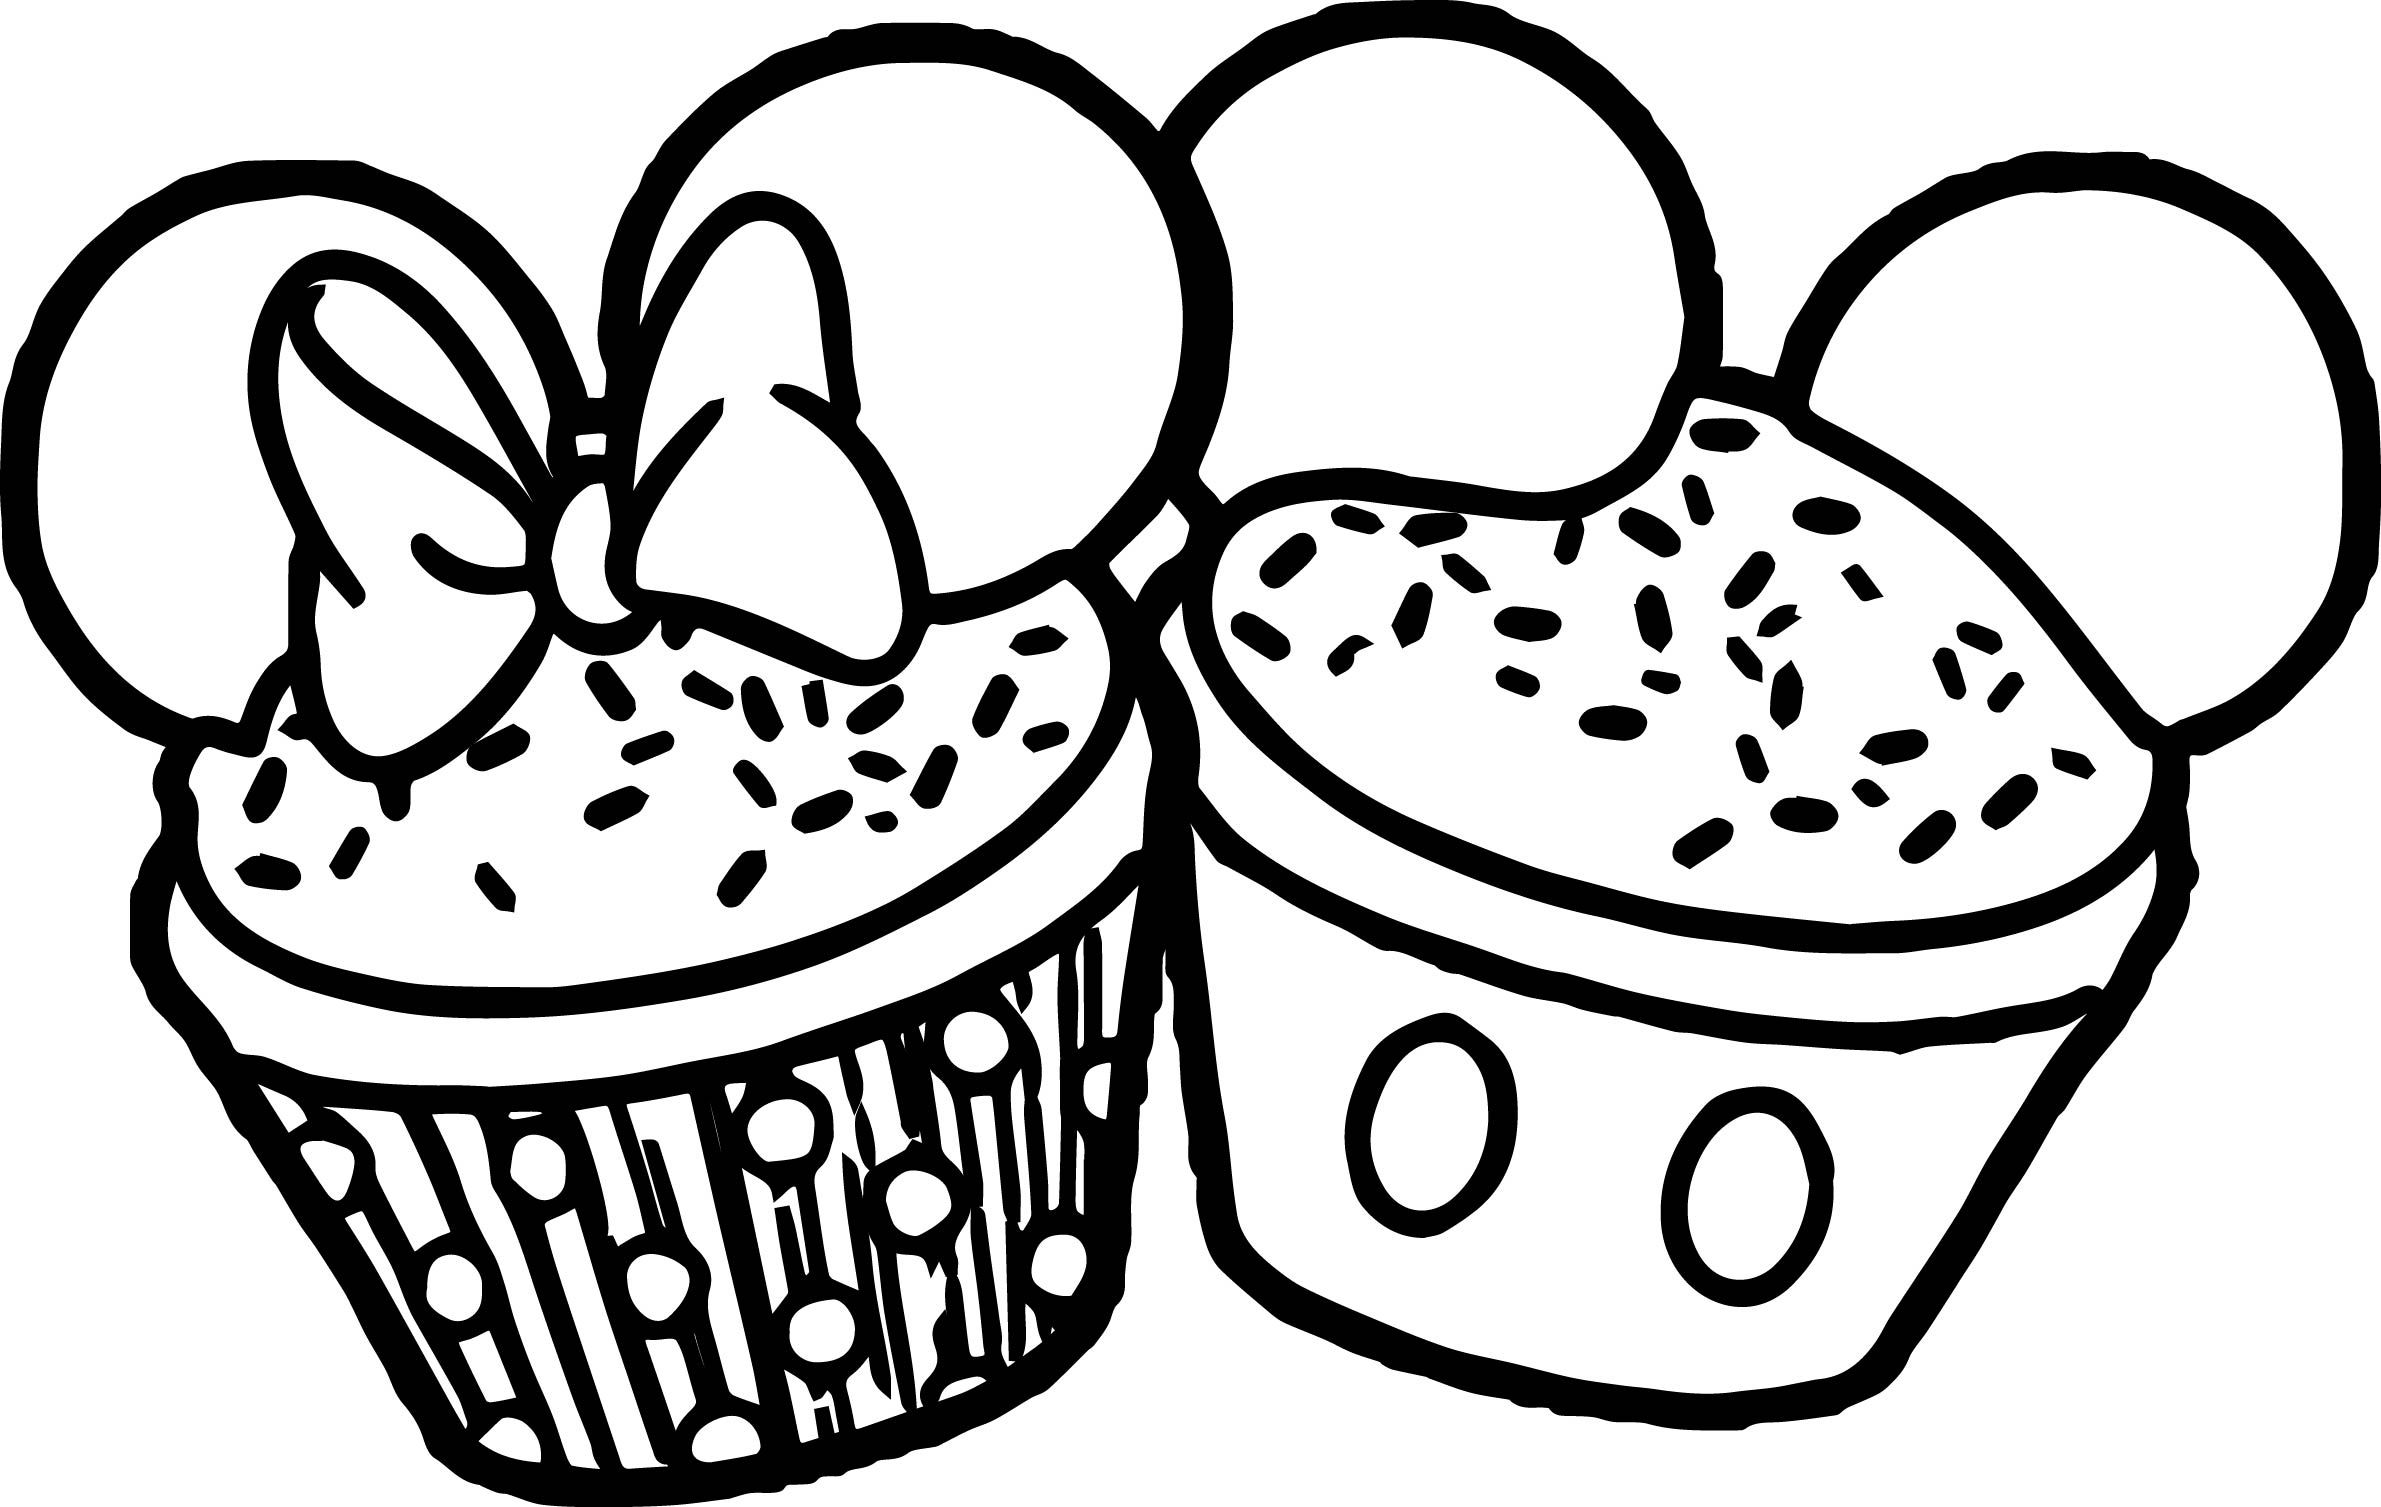 ears coloring pages - photo#39